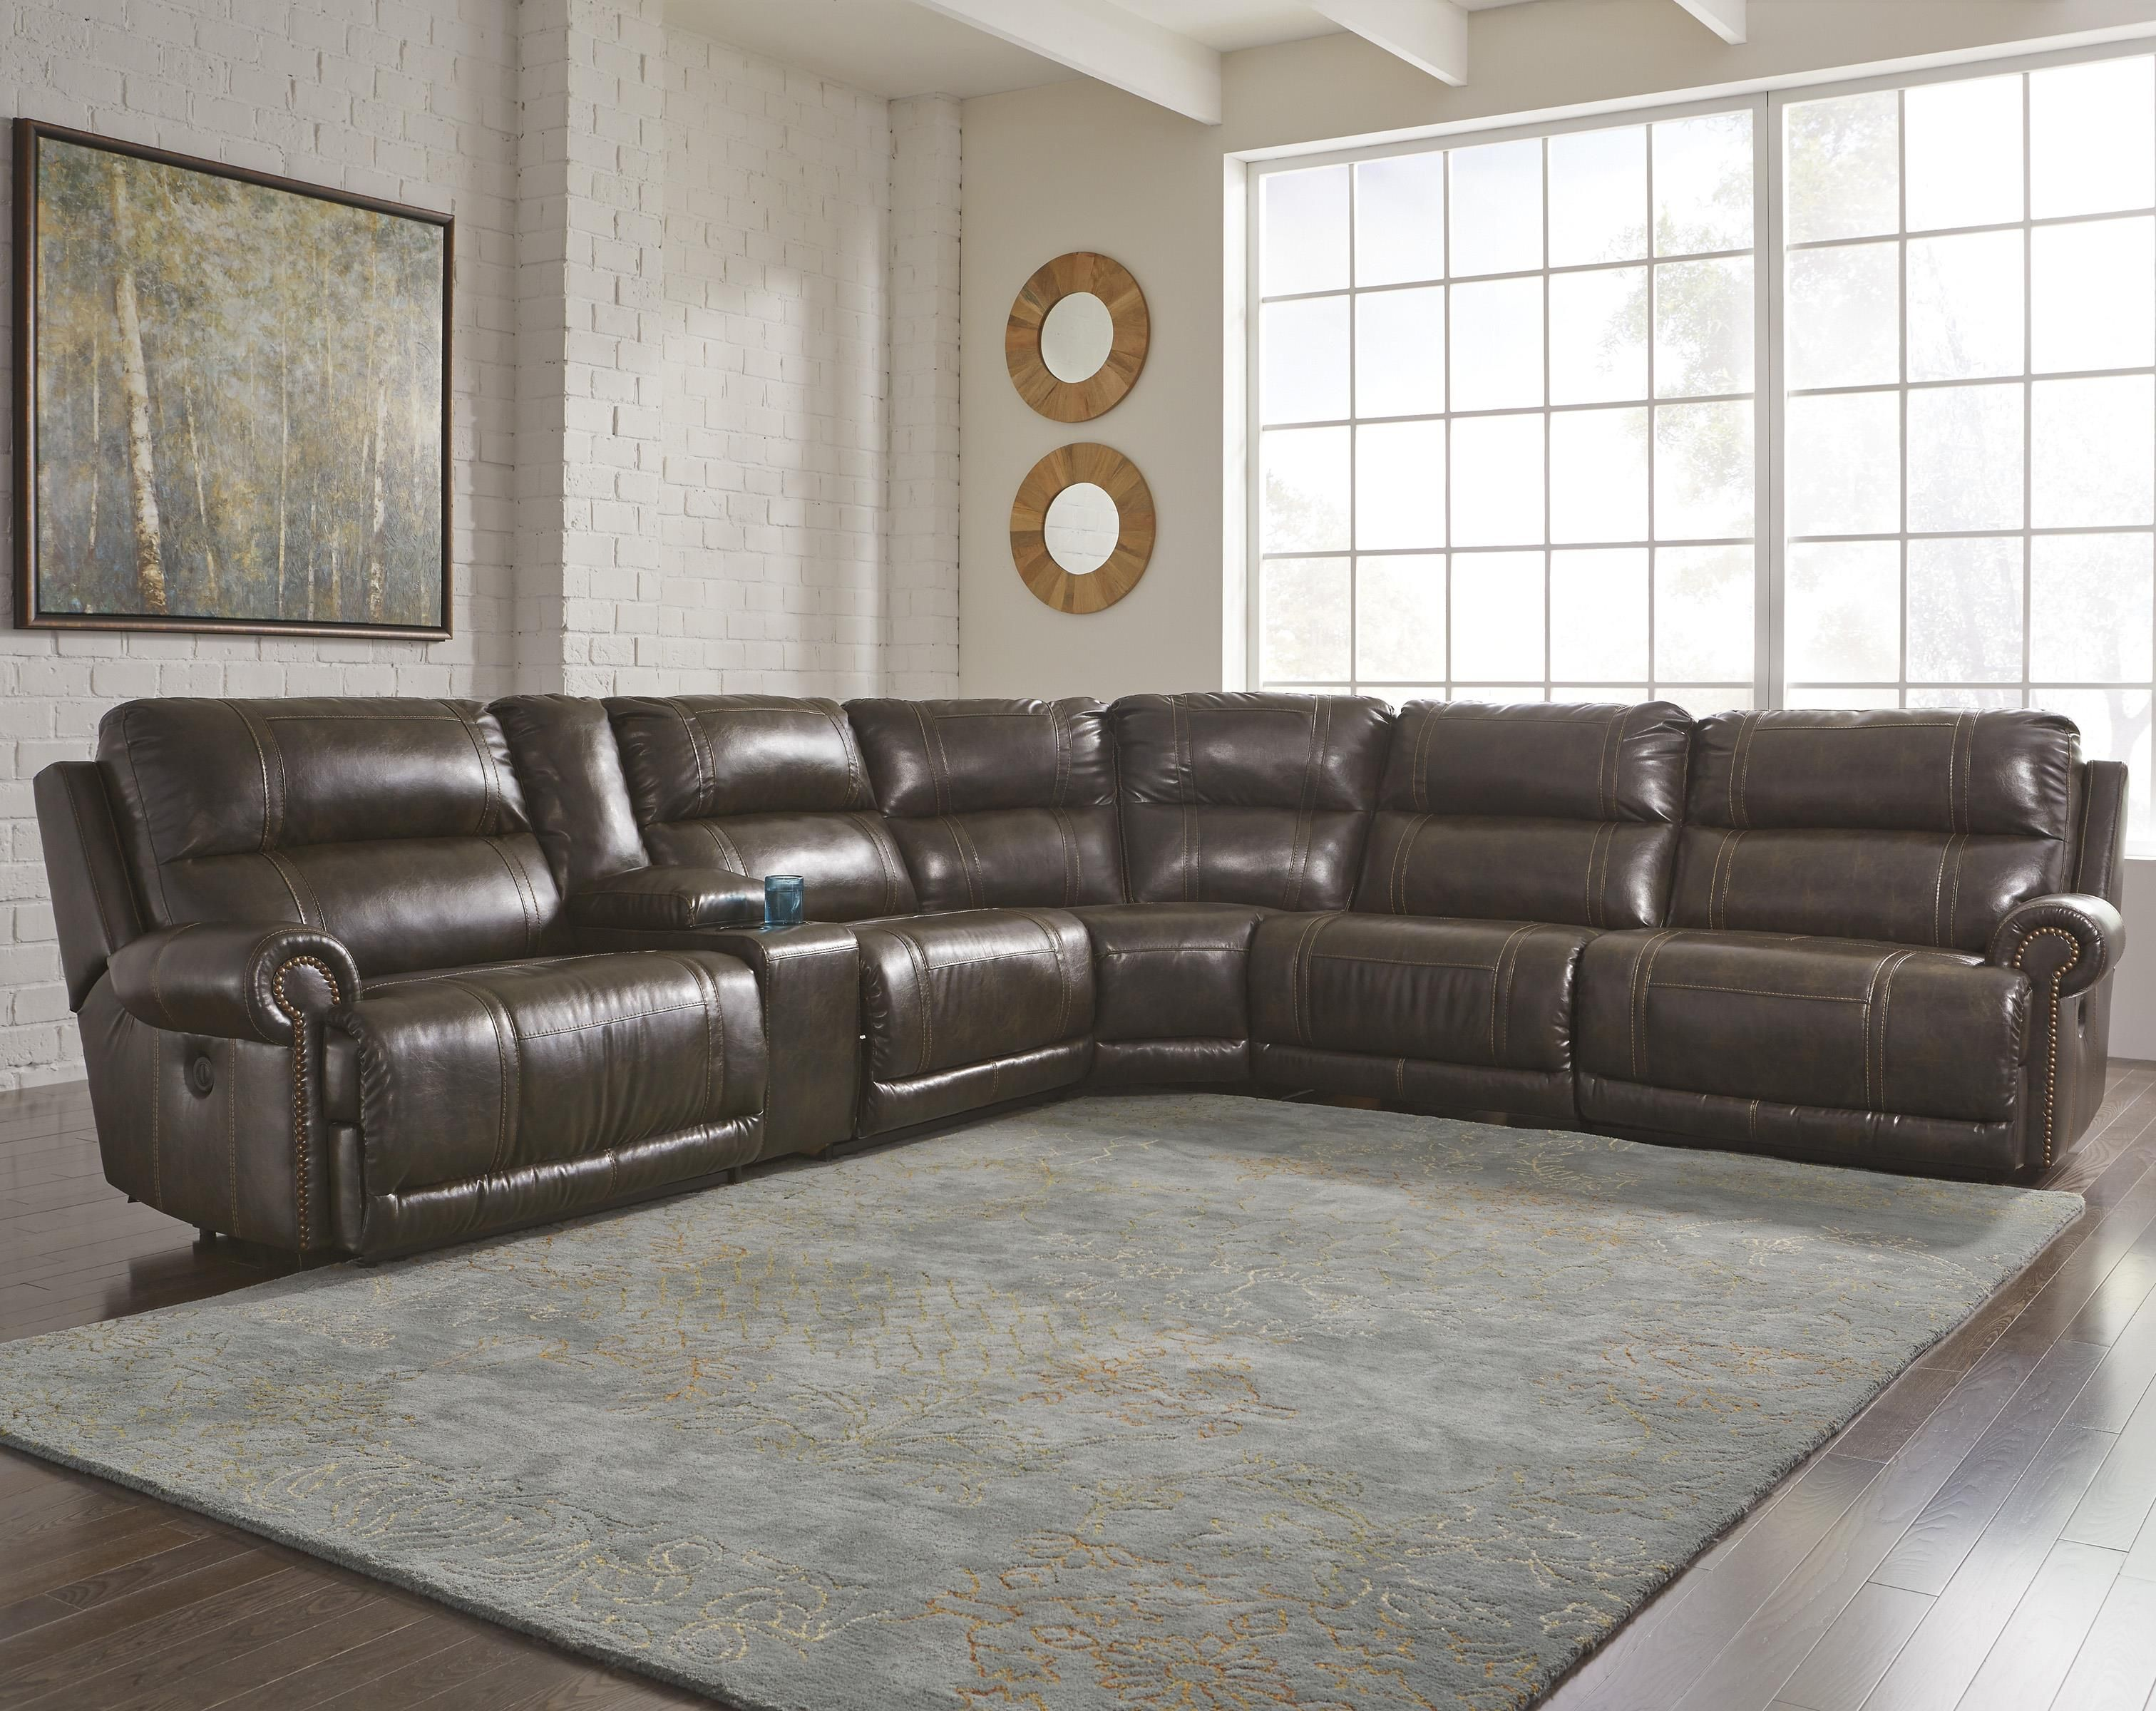 Dak DuraBlend 6 Piece Reclining Sectional by Signature Design by